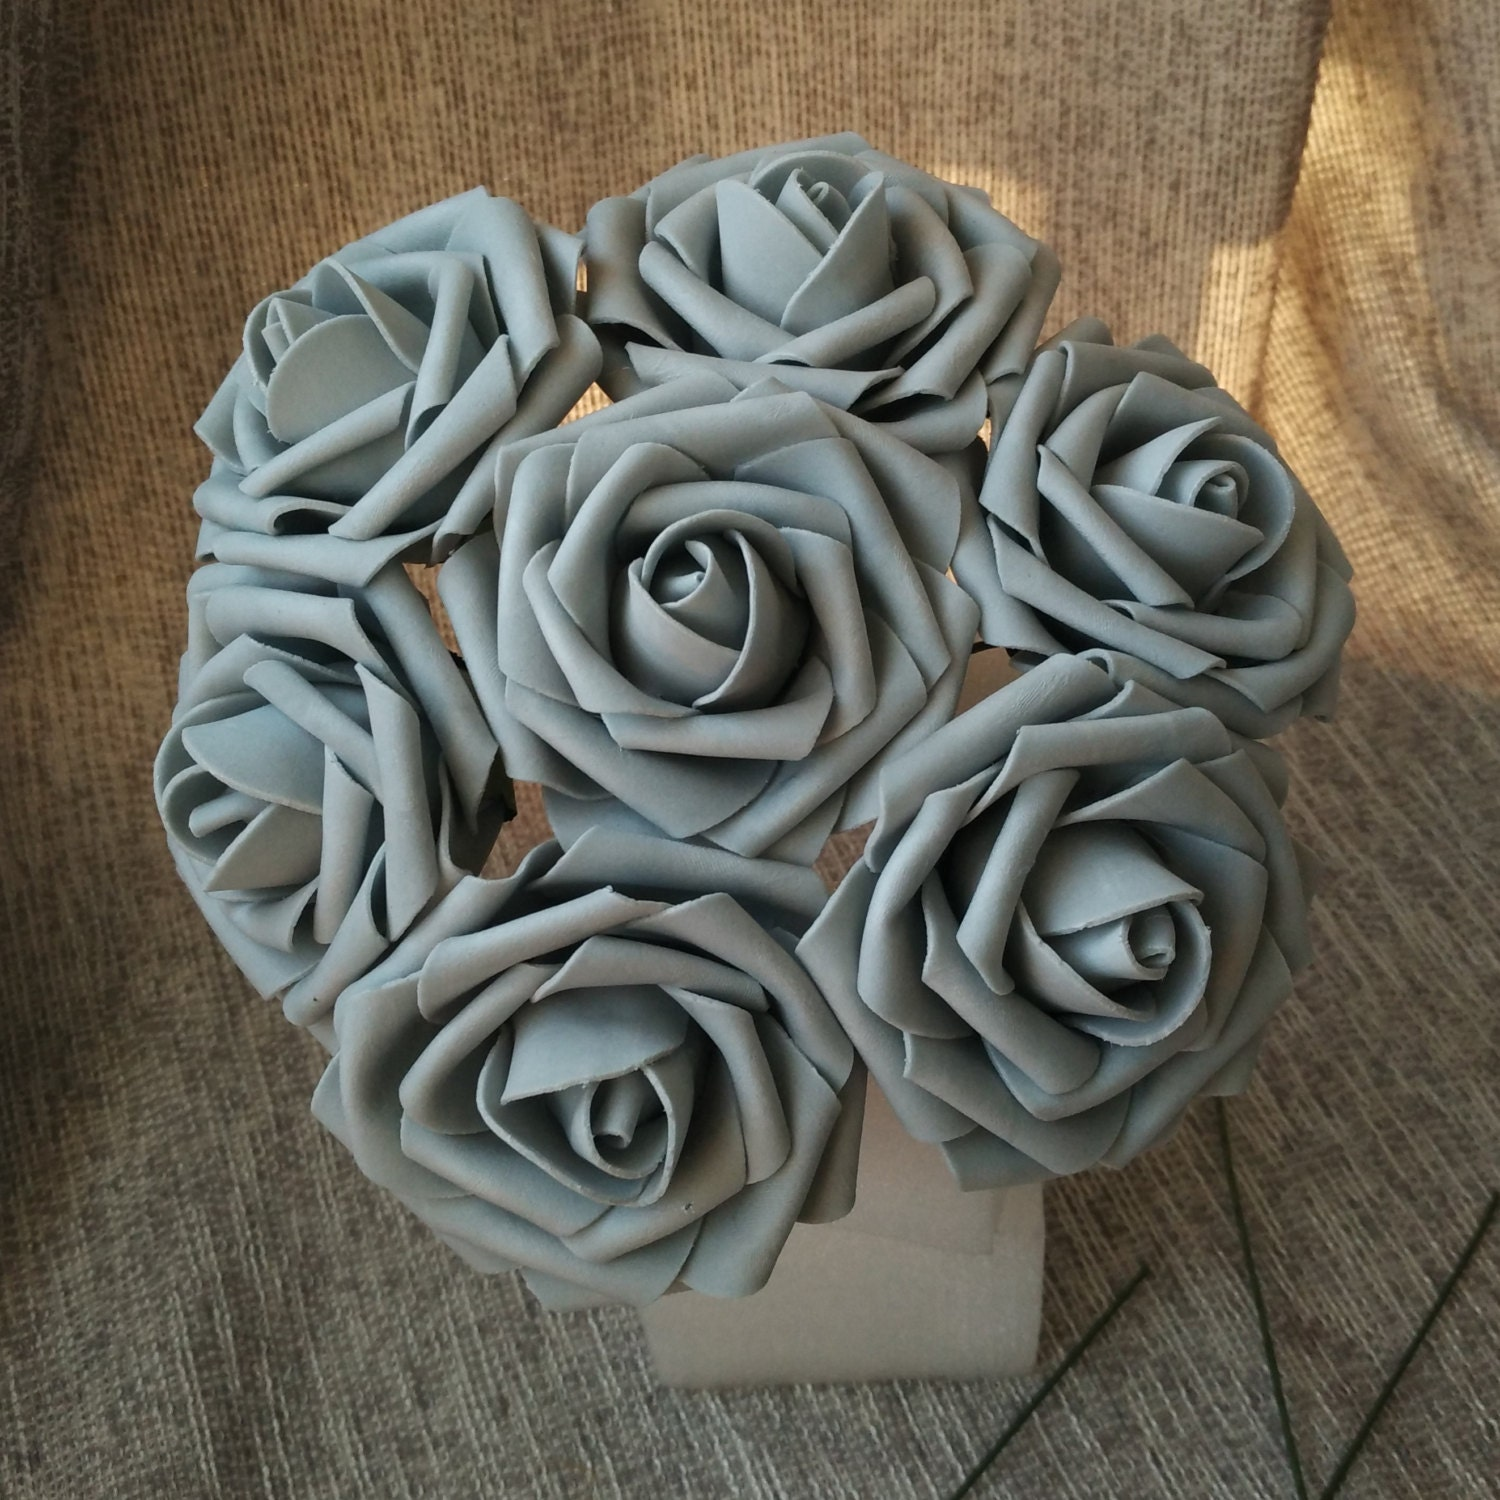 Gray Flowers Fake Rose Wholesale 100 Silver Artificial Grey For Wedding Table Centerpiece Bridal Bouquet LNPE034 From